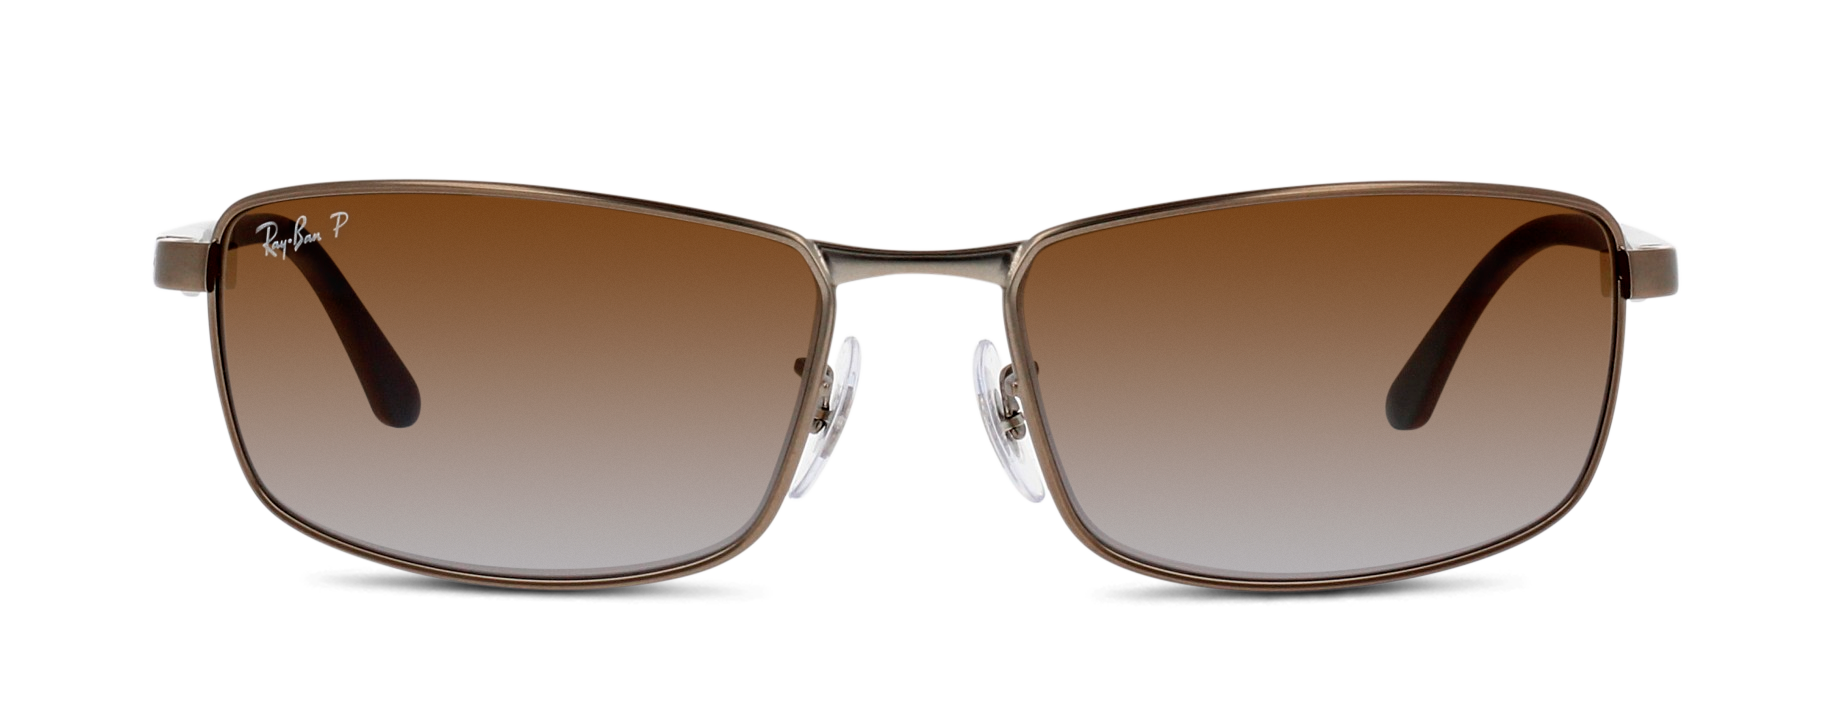 Front Ray-Ban Ray-Ban 3498 029/T5 61/17 Zilver/Bruin